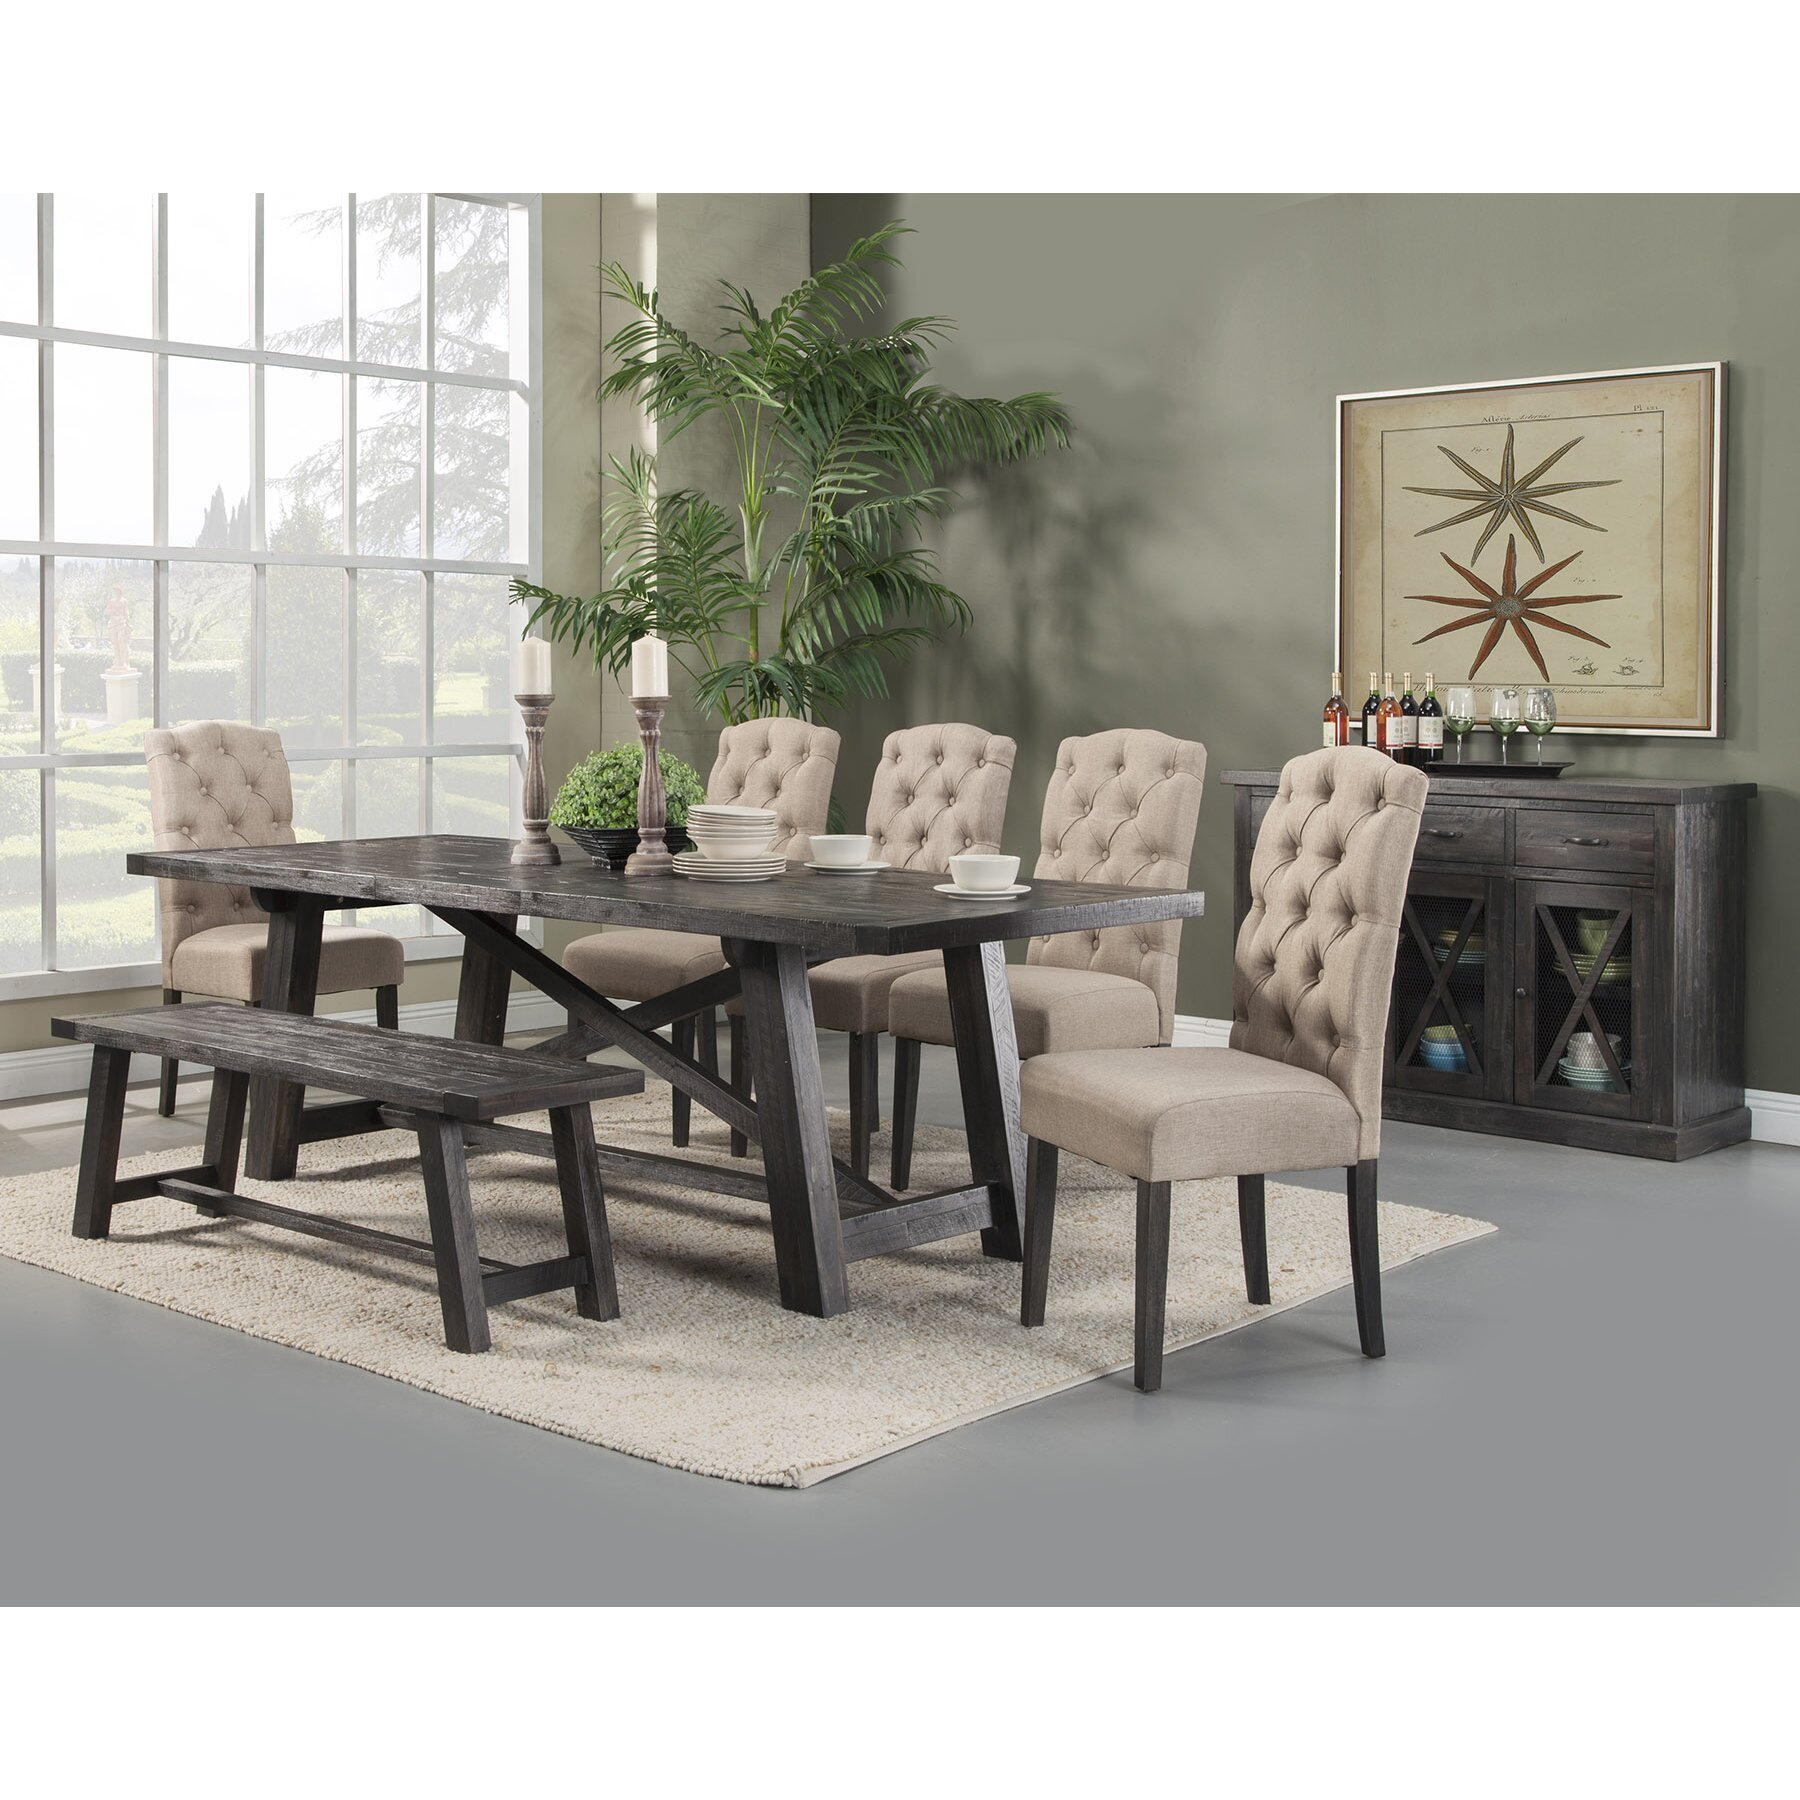 Loon Peak Todd Creek Extendable Dining Table amp Reviews  : Todd Creek Extendable Dining Table LOON2523 from www.wayfair.ca size 1800 x 1800 jpeg 537kB